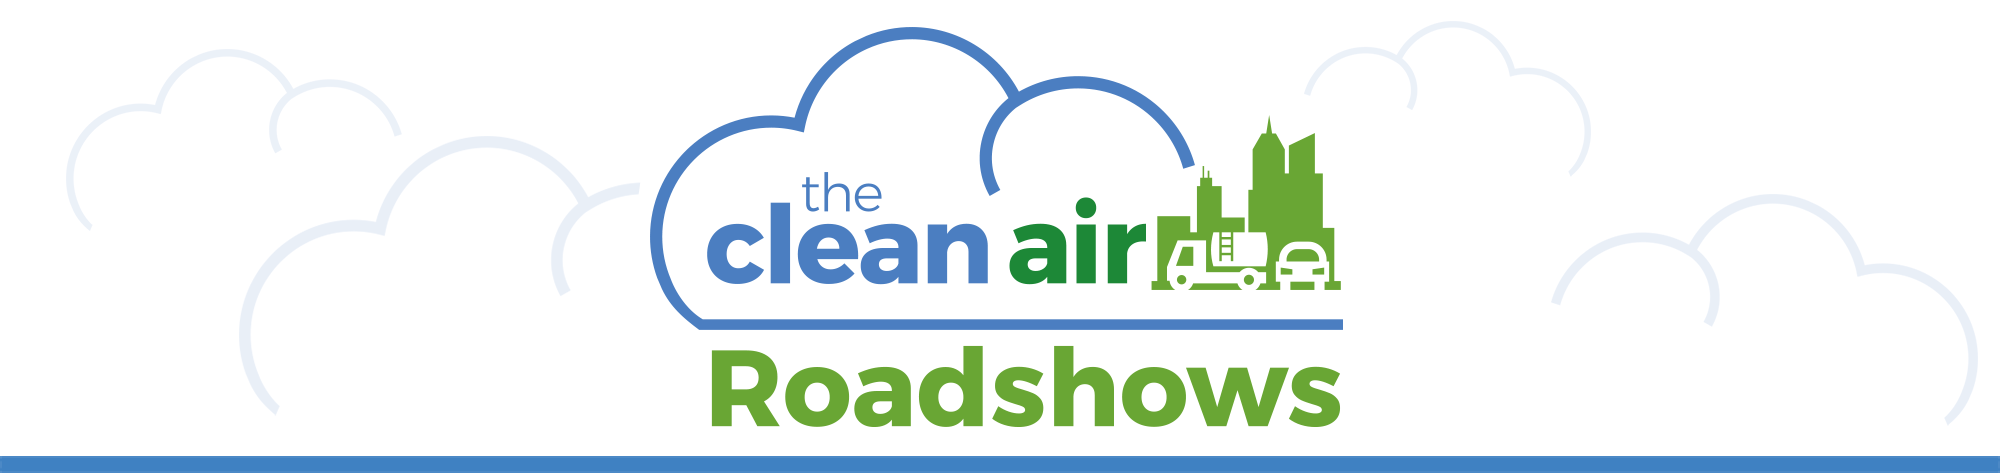 Clean Air Roadshows